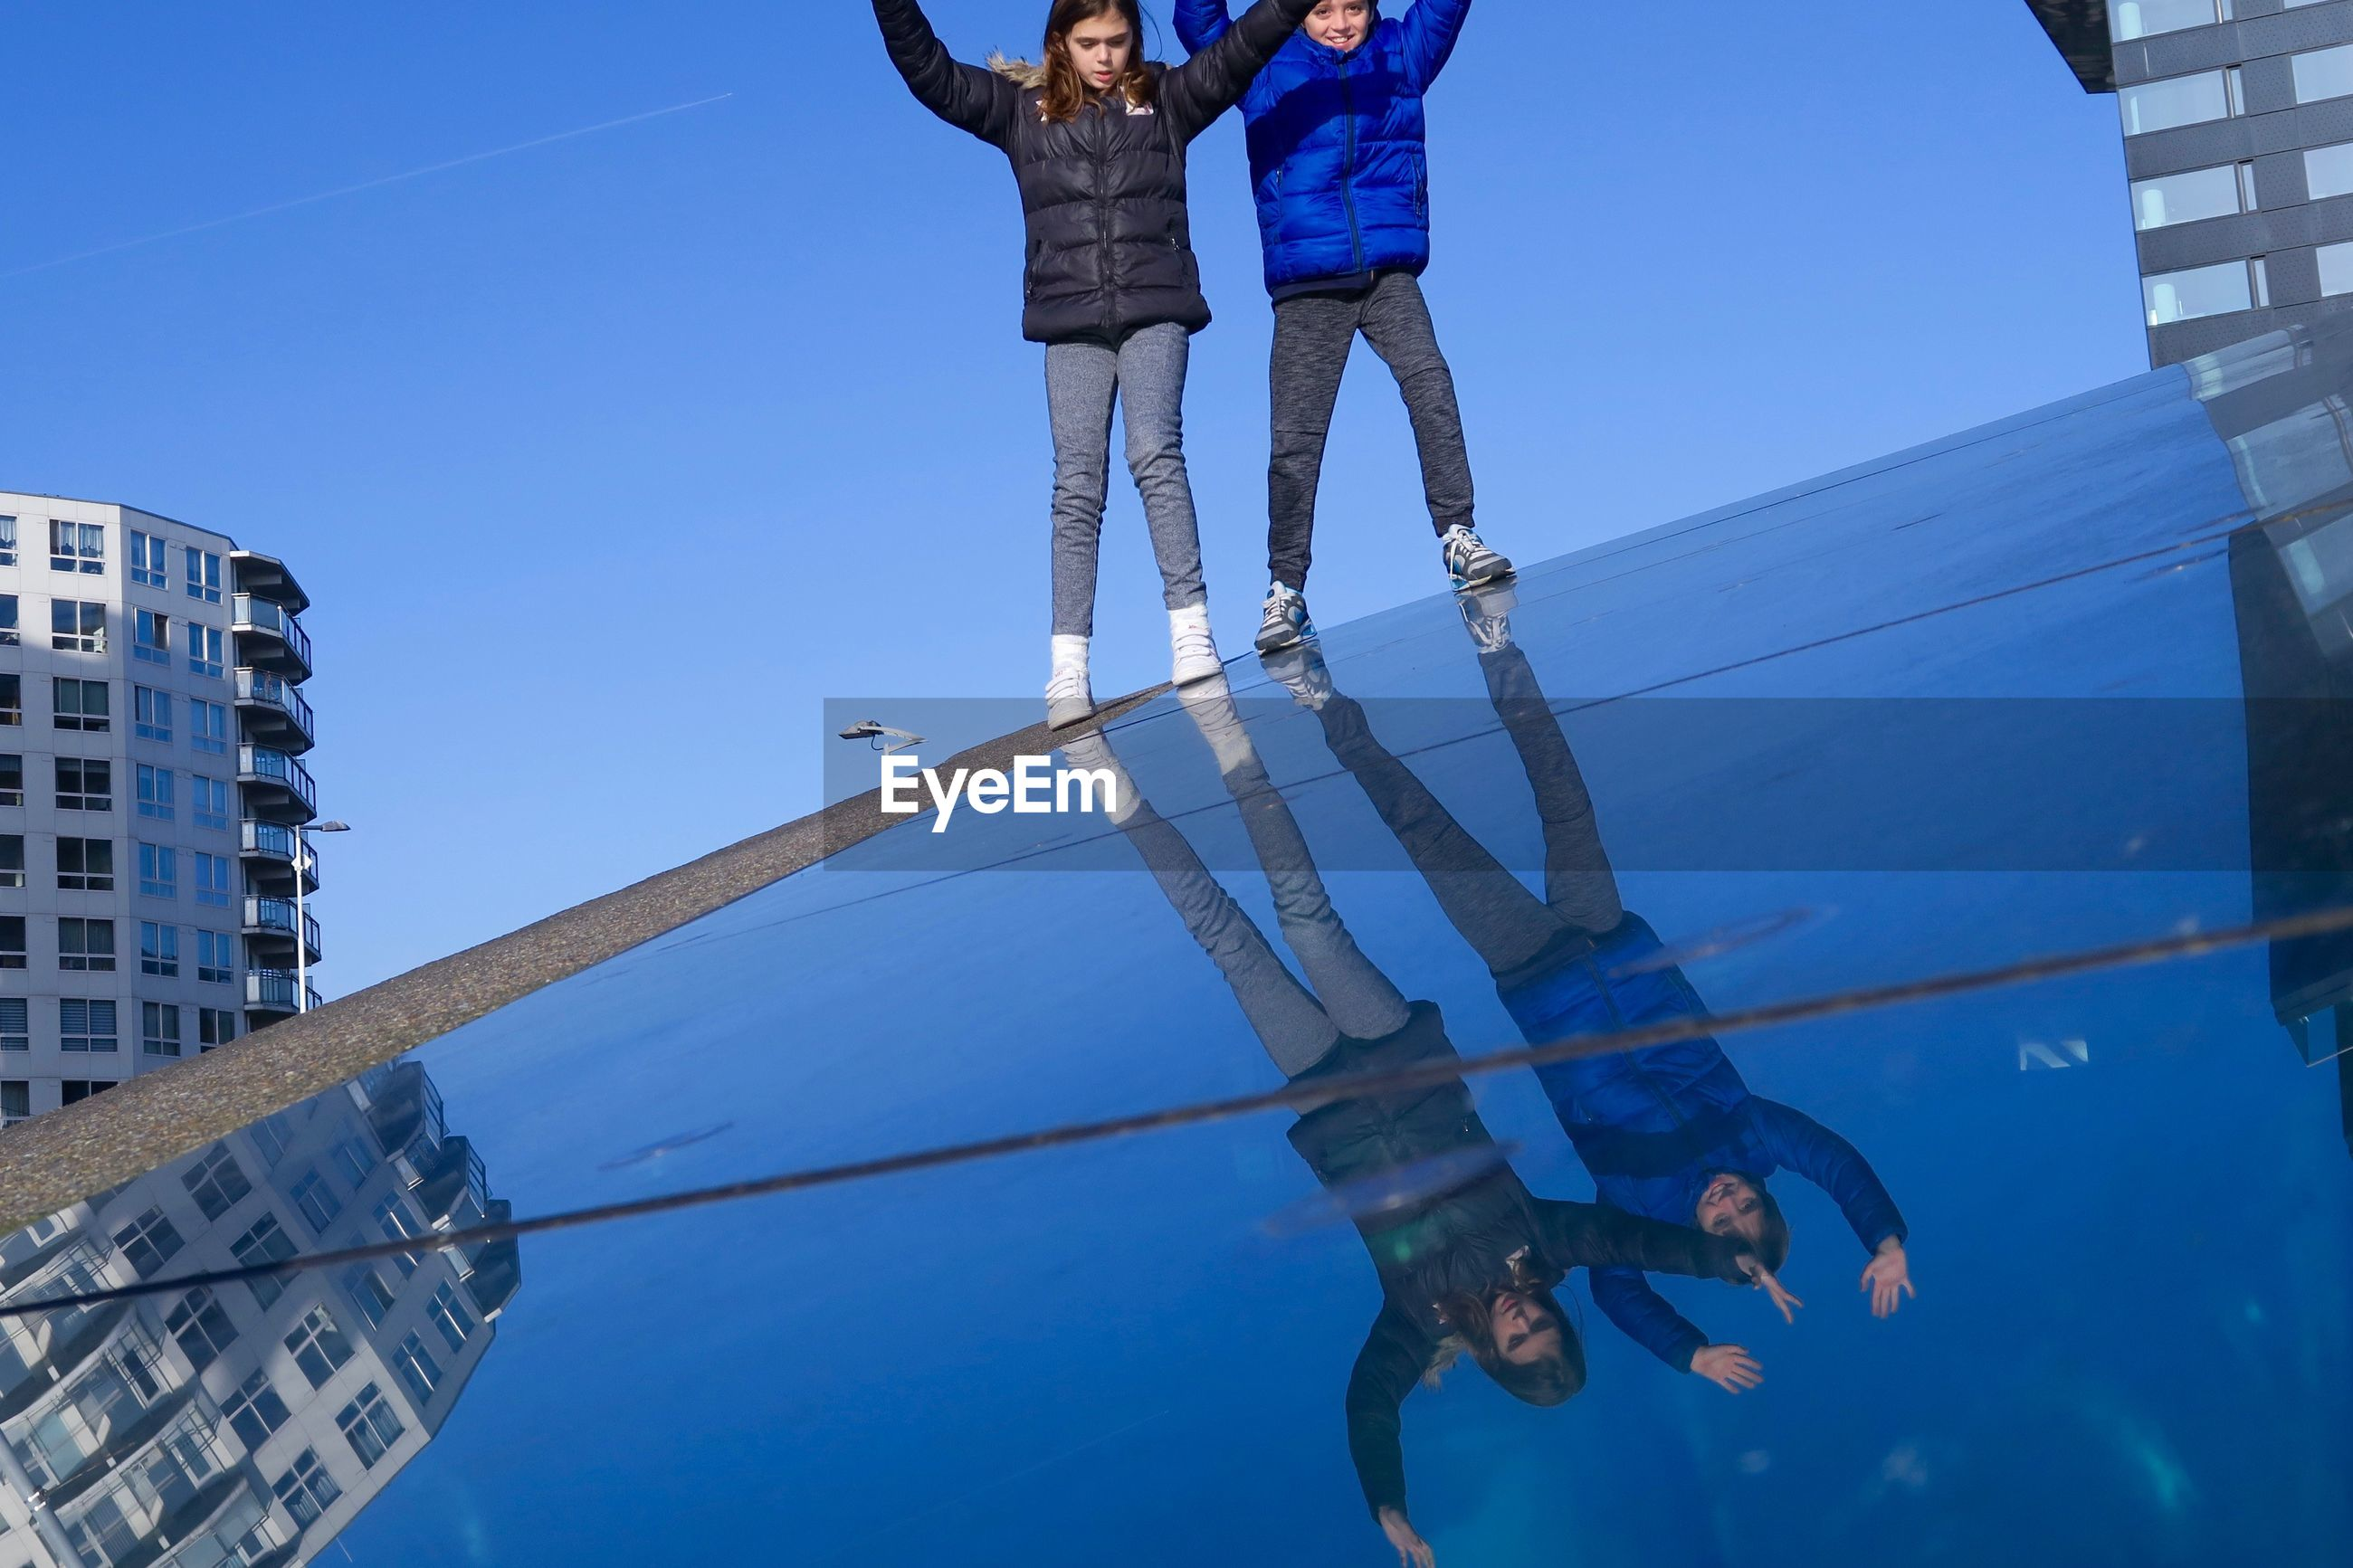 Low angle view of friends standing on steep glass floor against sky